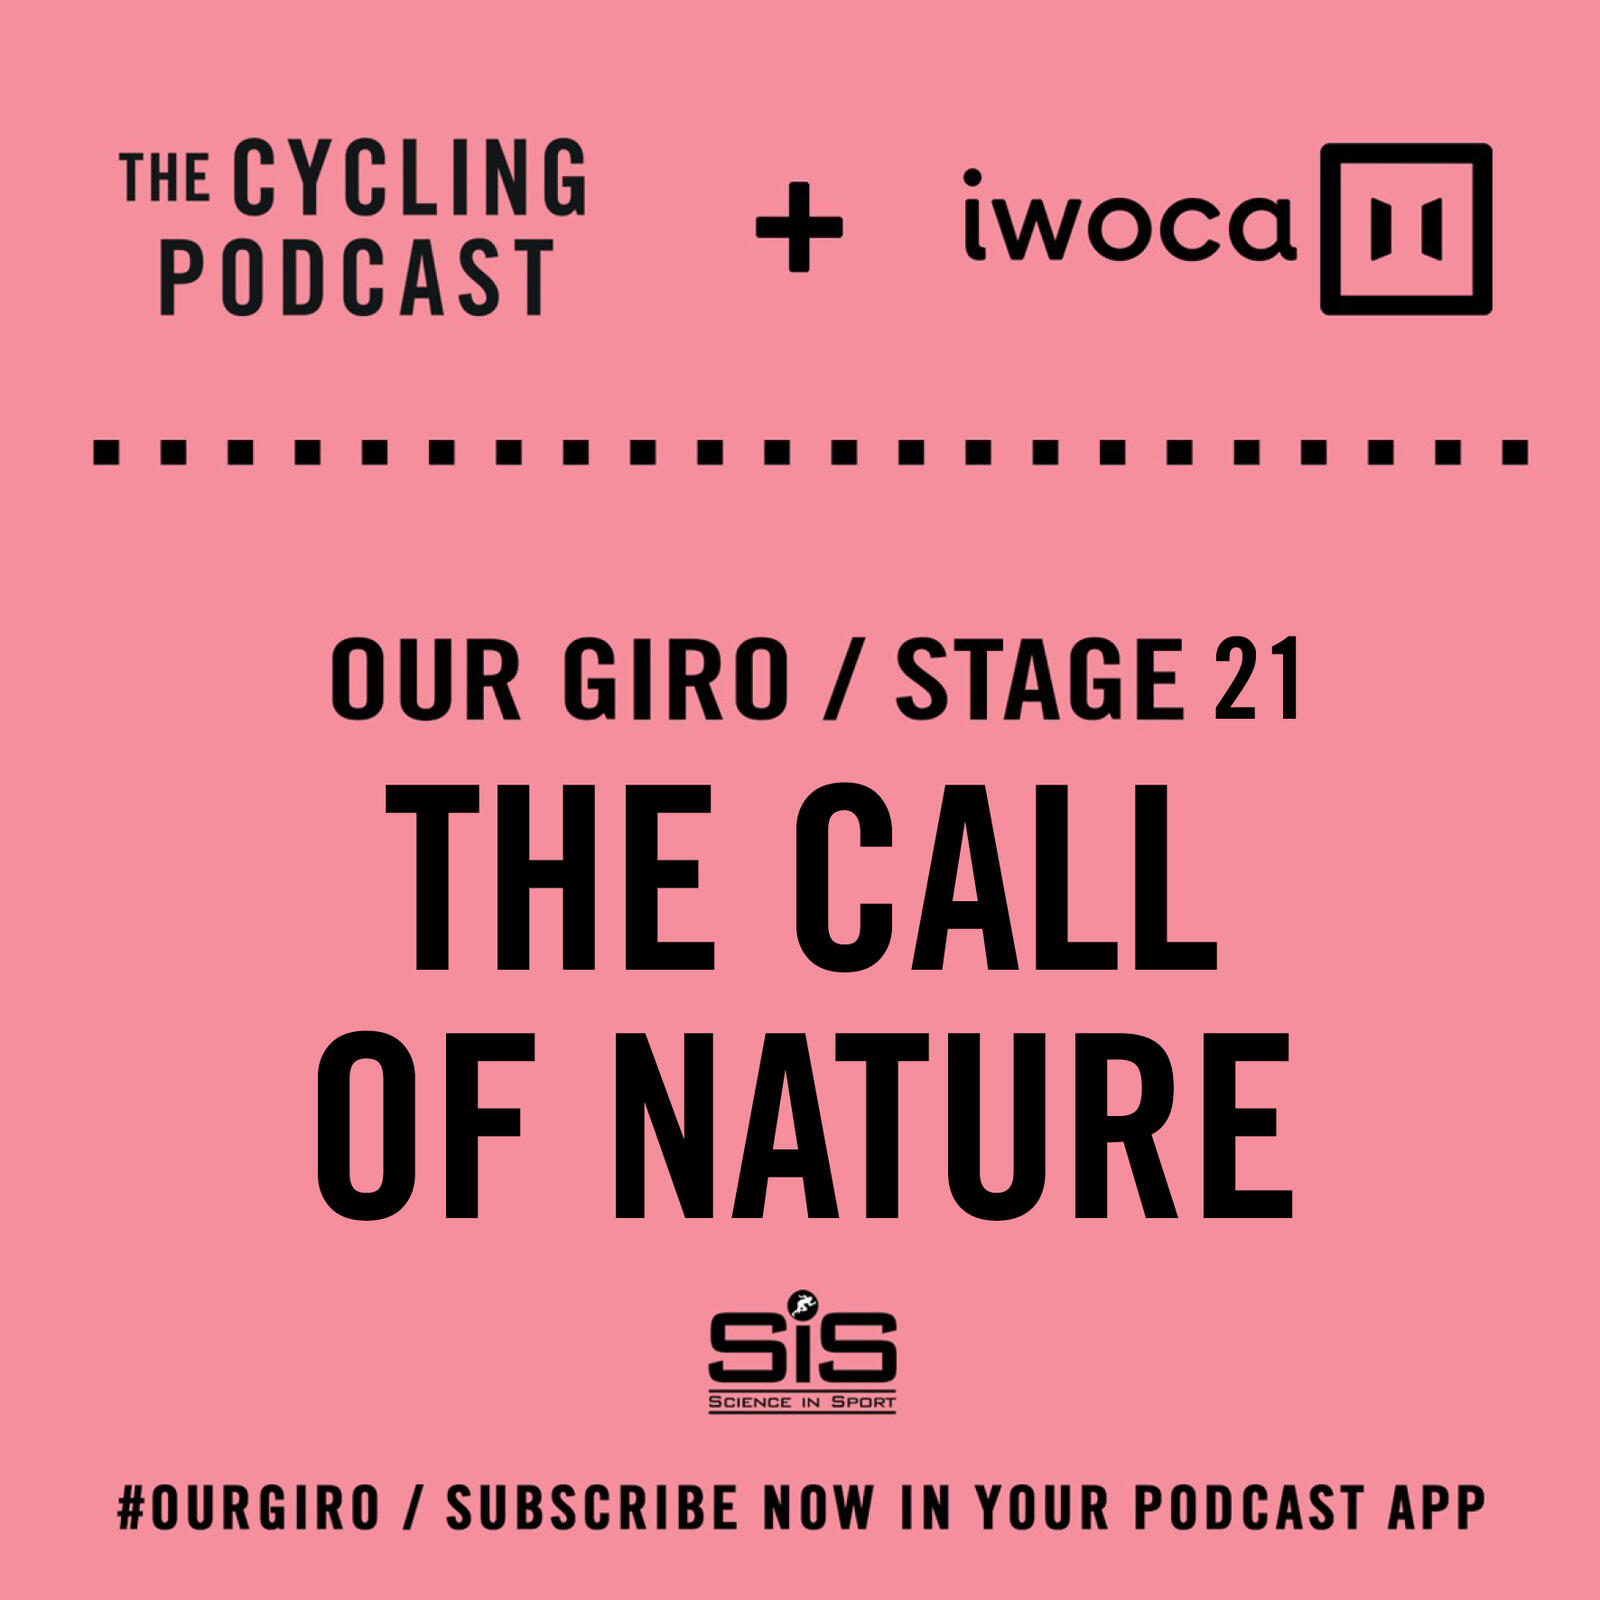 69: Our Giro stage 21: The call of nature